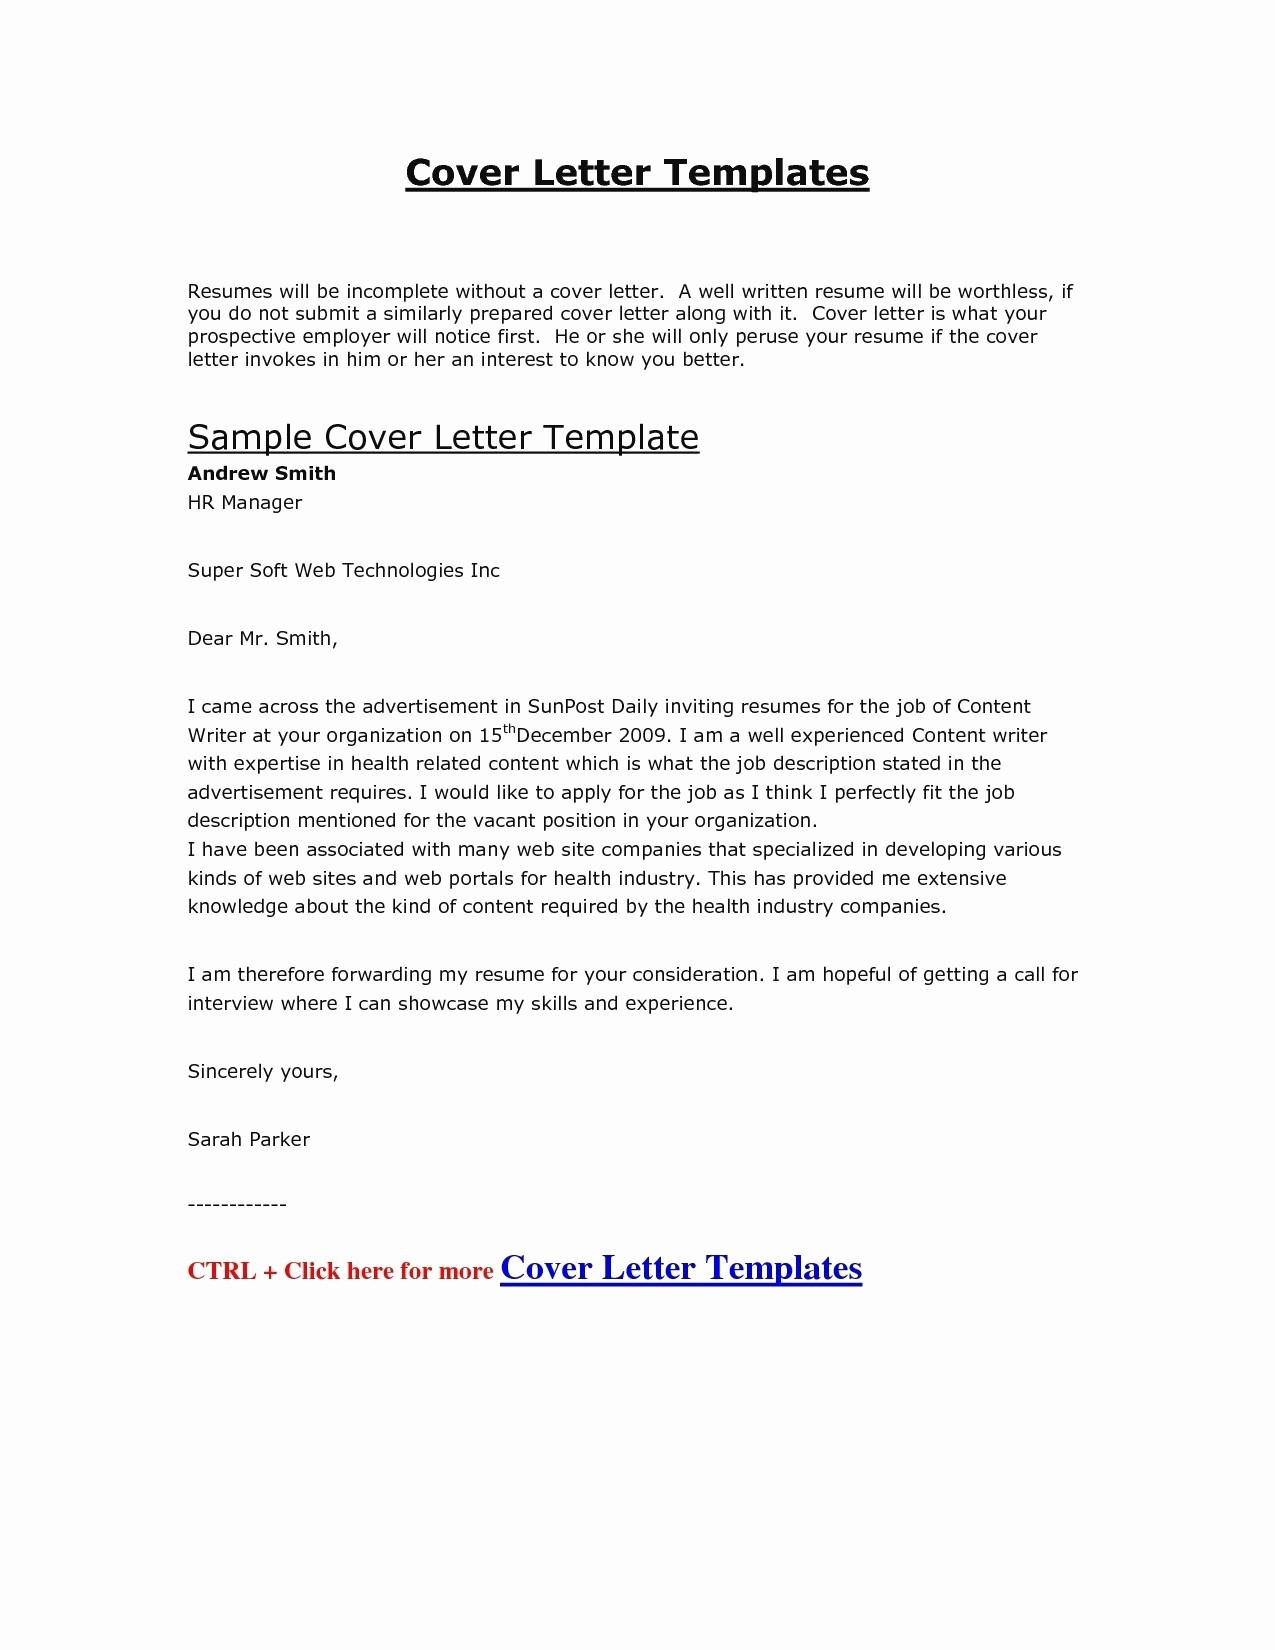 Dear Seller Letter Template - Job Application Letter format Template Copy Cover Letter Template Hr